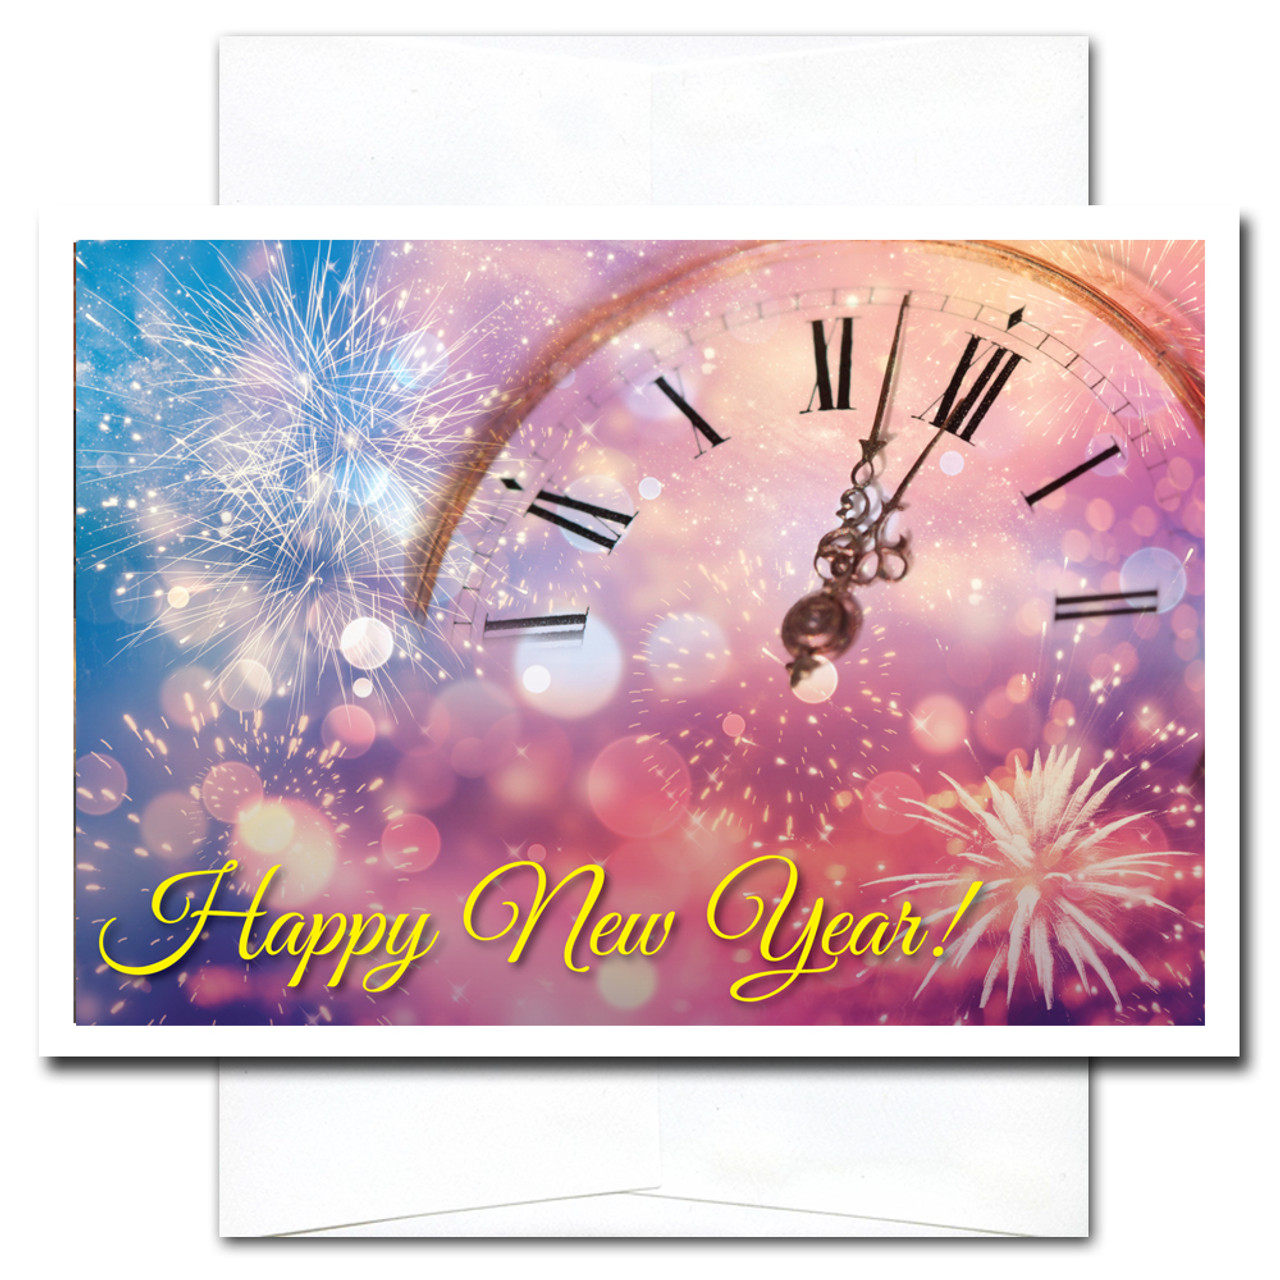 Minutes til Midnight New Year Card shows a clock face surrounded by sparkling confetti and starbursts